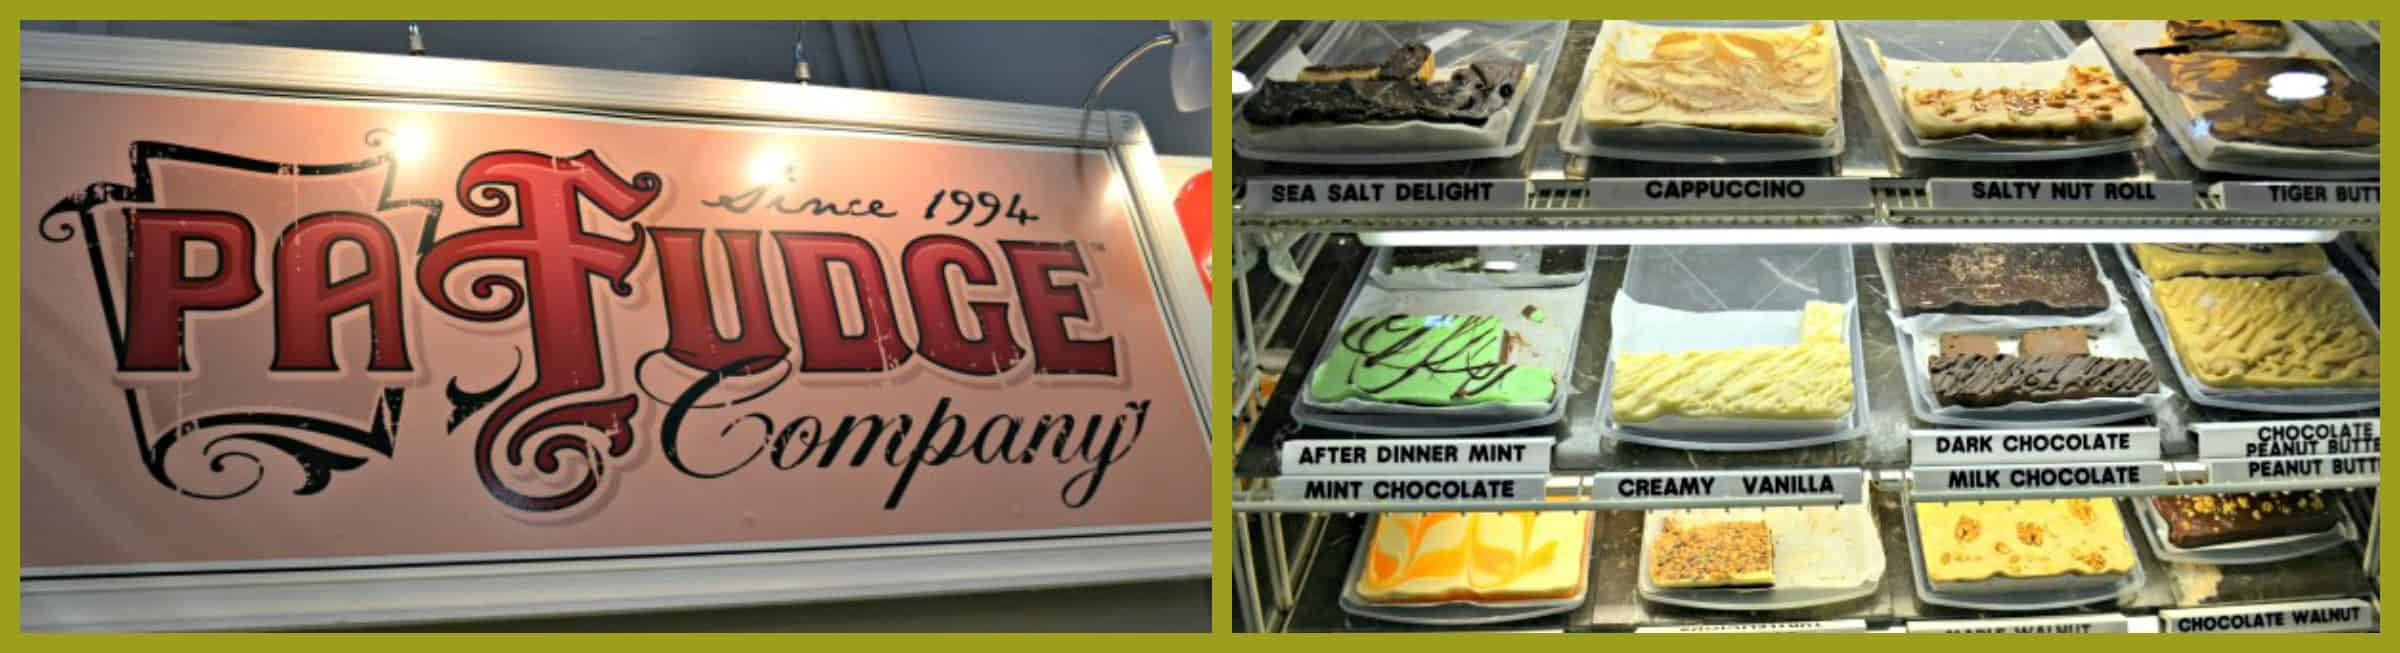 fudge sign